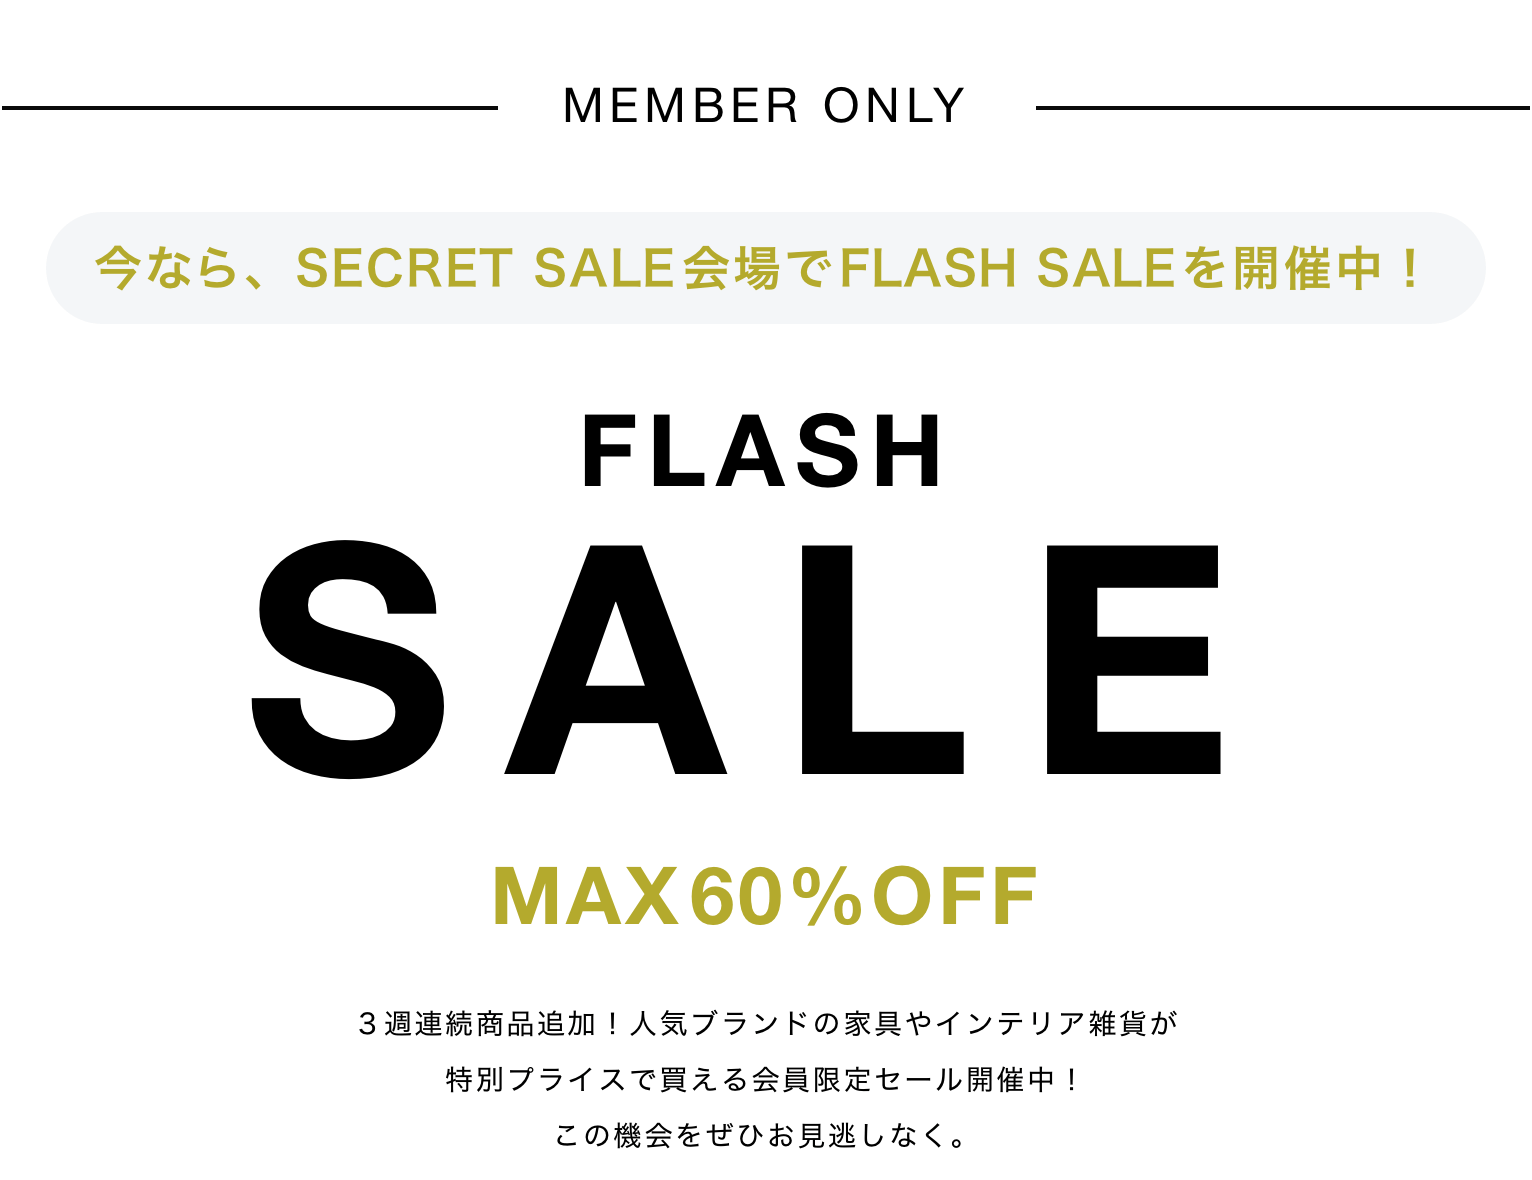 FLASH SALE MAX50%OFF